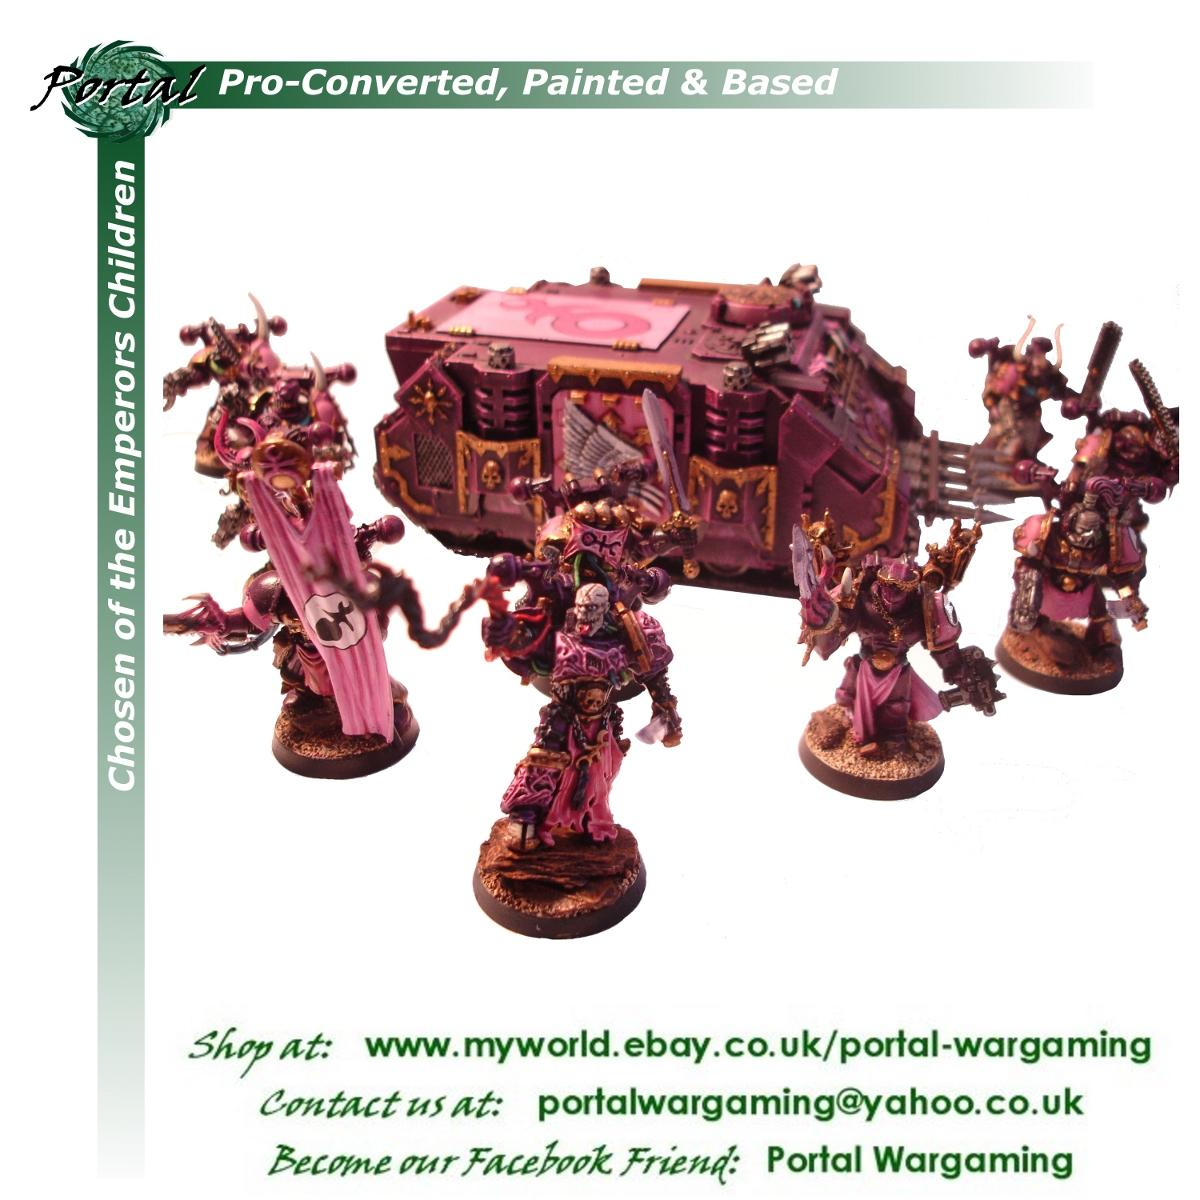 Chaos Space Marines, Emperor's Children, Pro-based, Pro-converted, Pro-painted, Warhammer 40,000